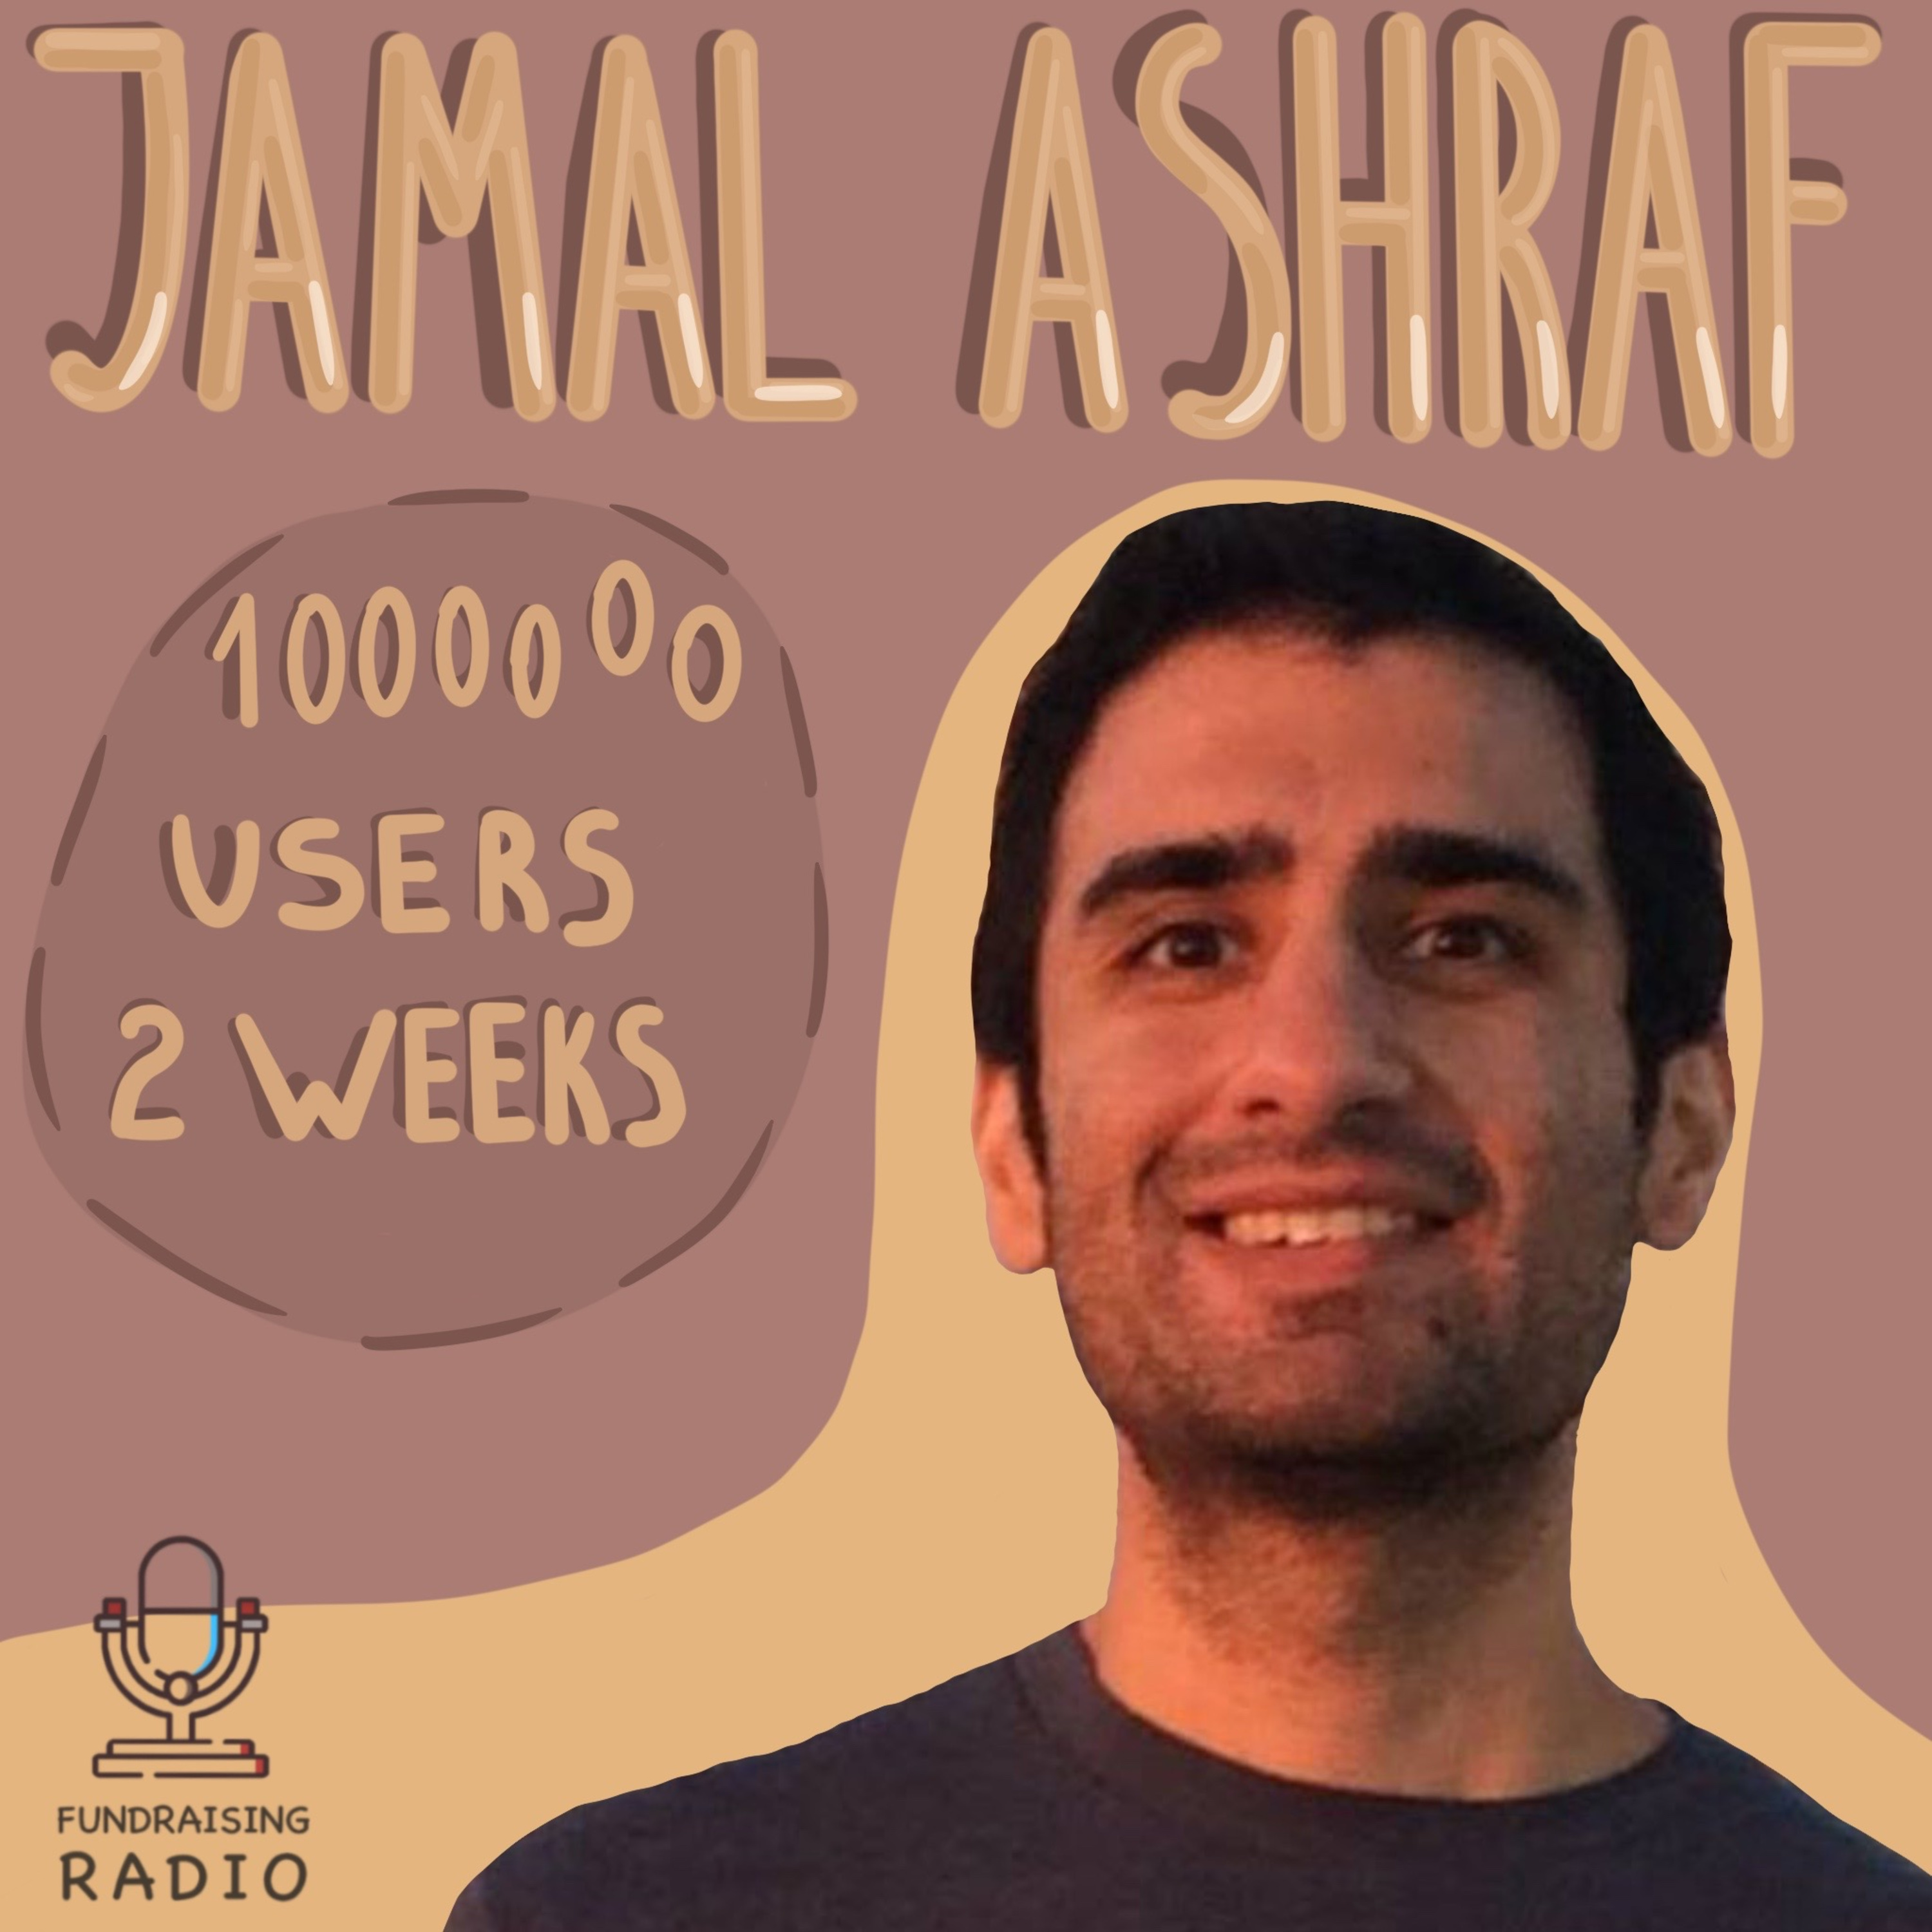 Selling Esgut for millions and building a top 5 Facebook app company, by Jamal Ashraf.